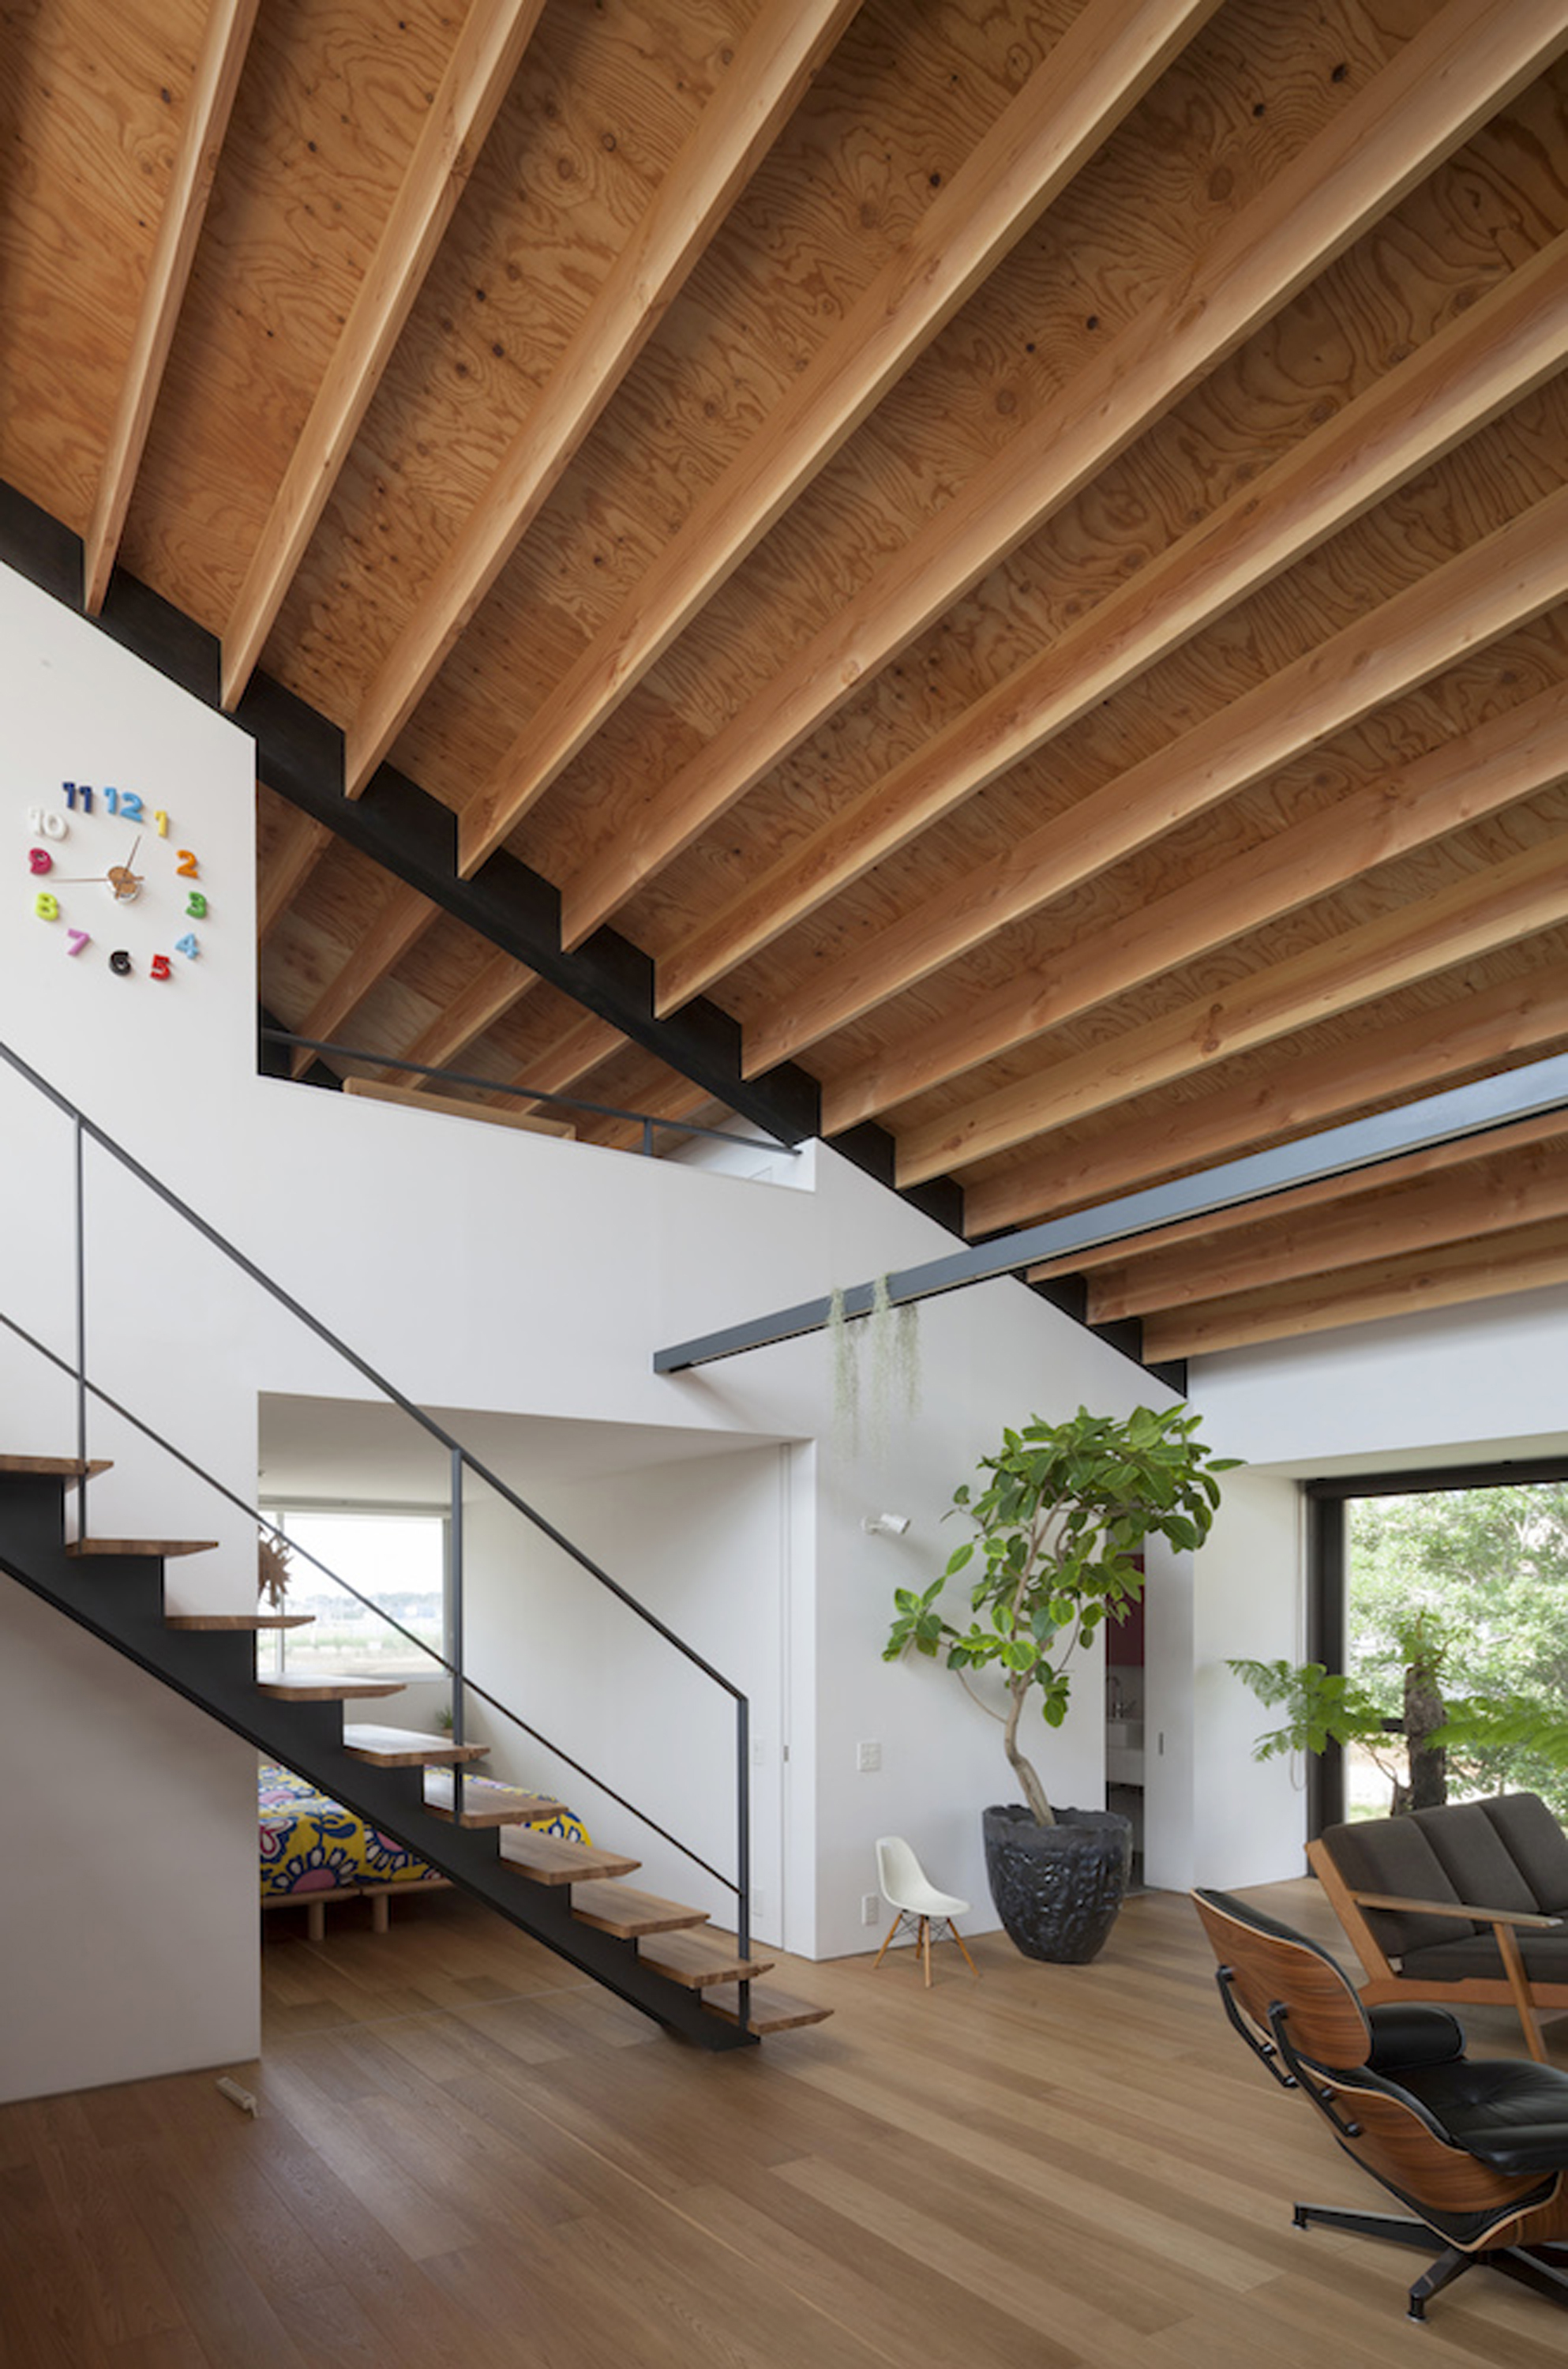 52eb1f57e8e44e29ae00009a_house-with-a-large-hipped-roof-naoi-architecture-design-office_housewithlhr_23